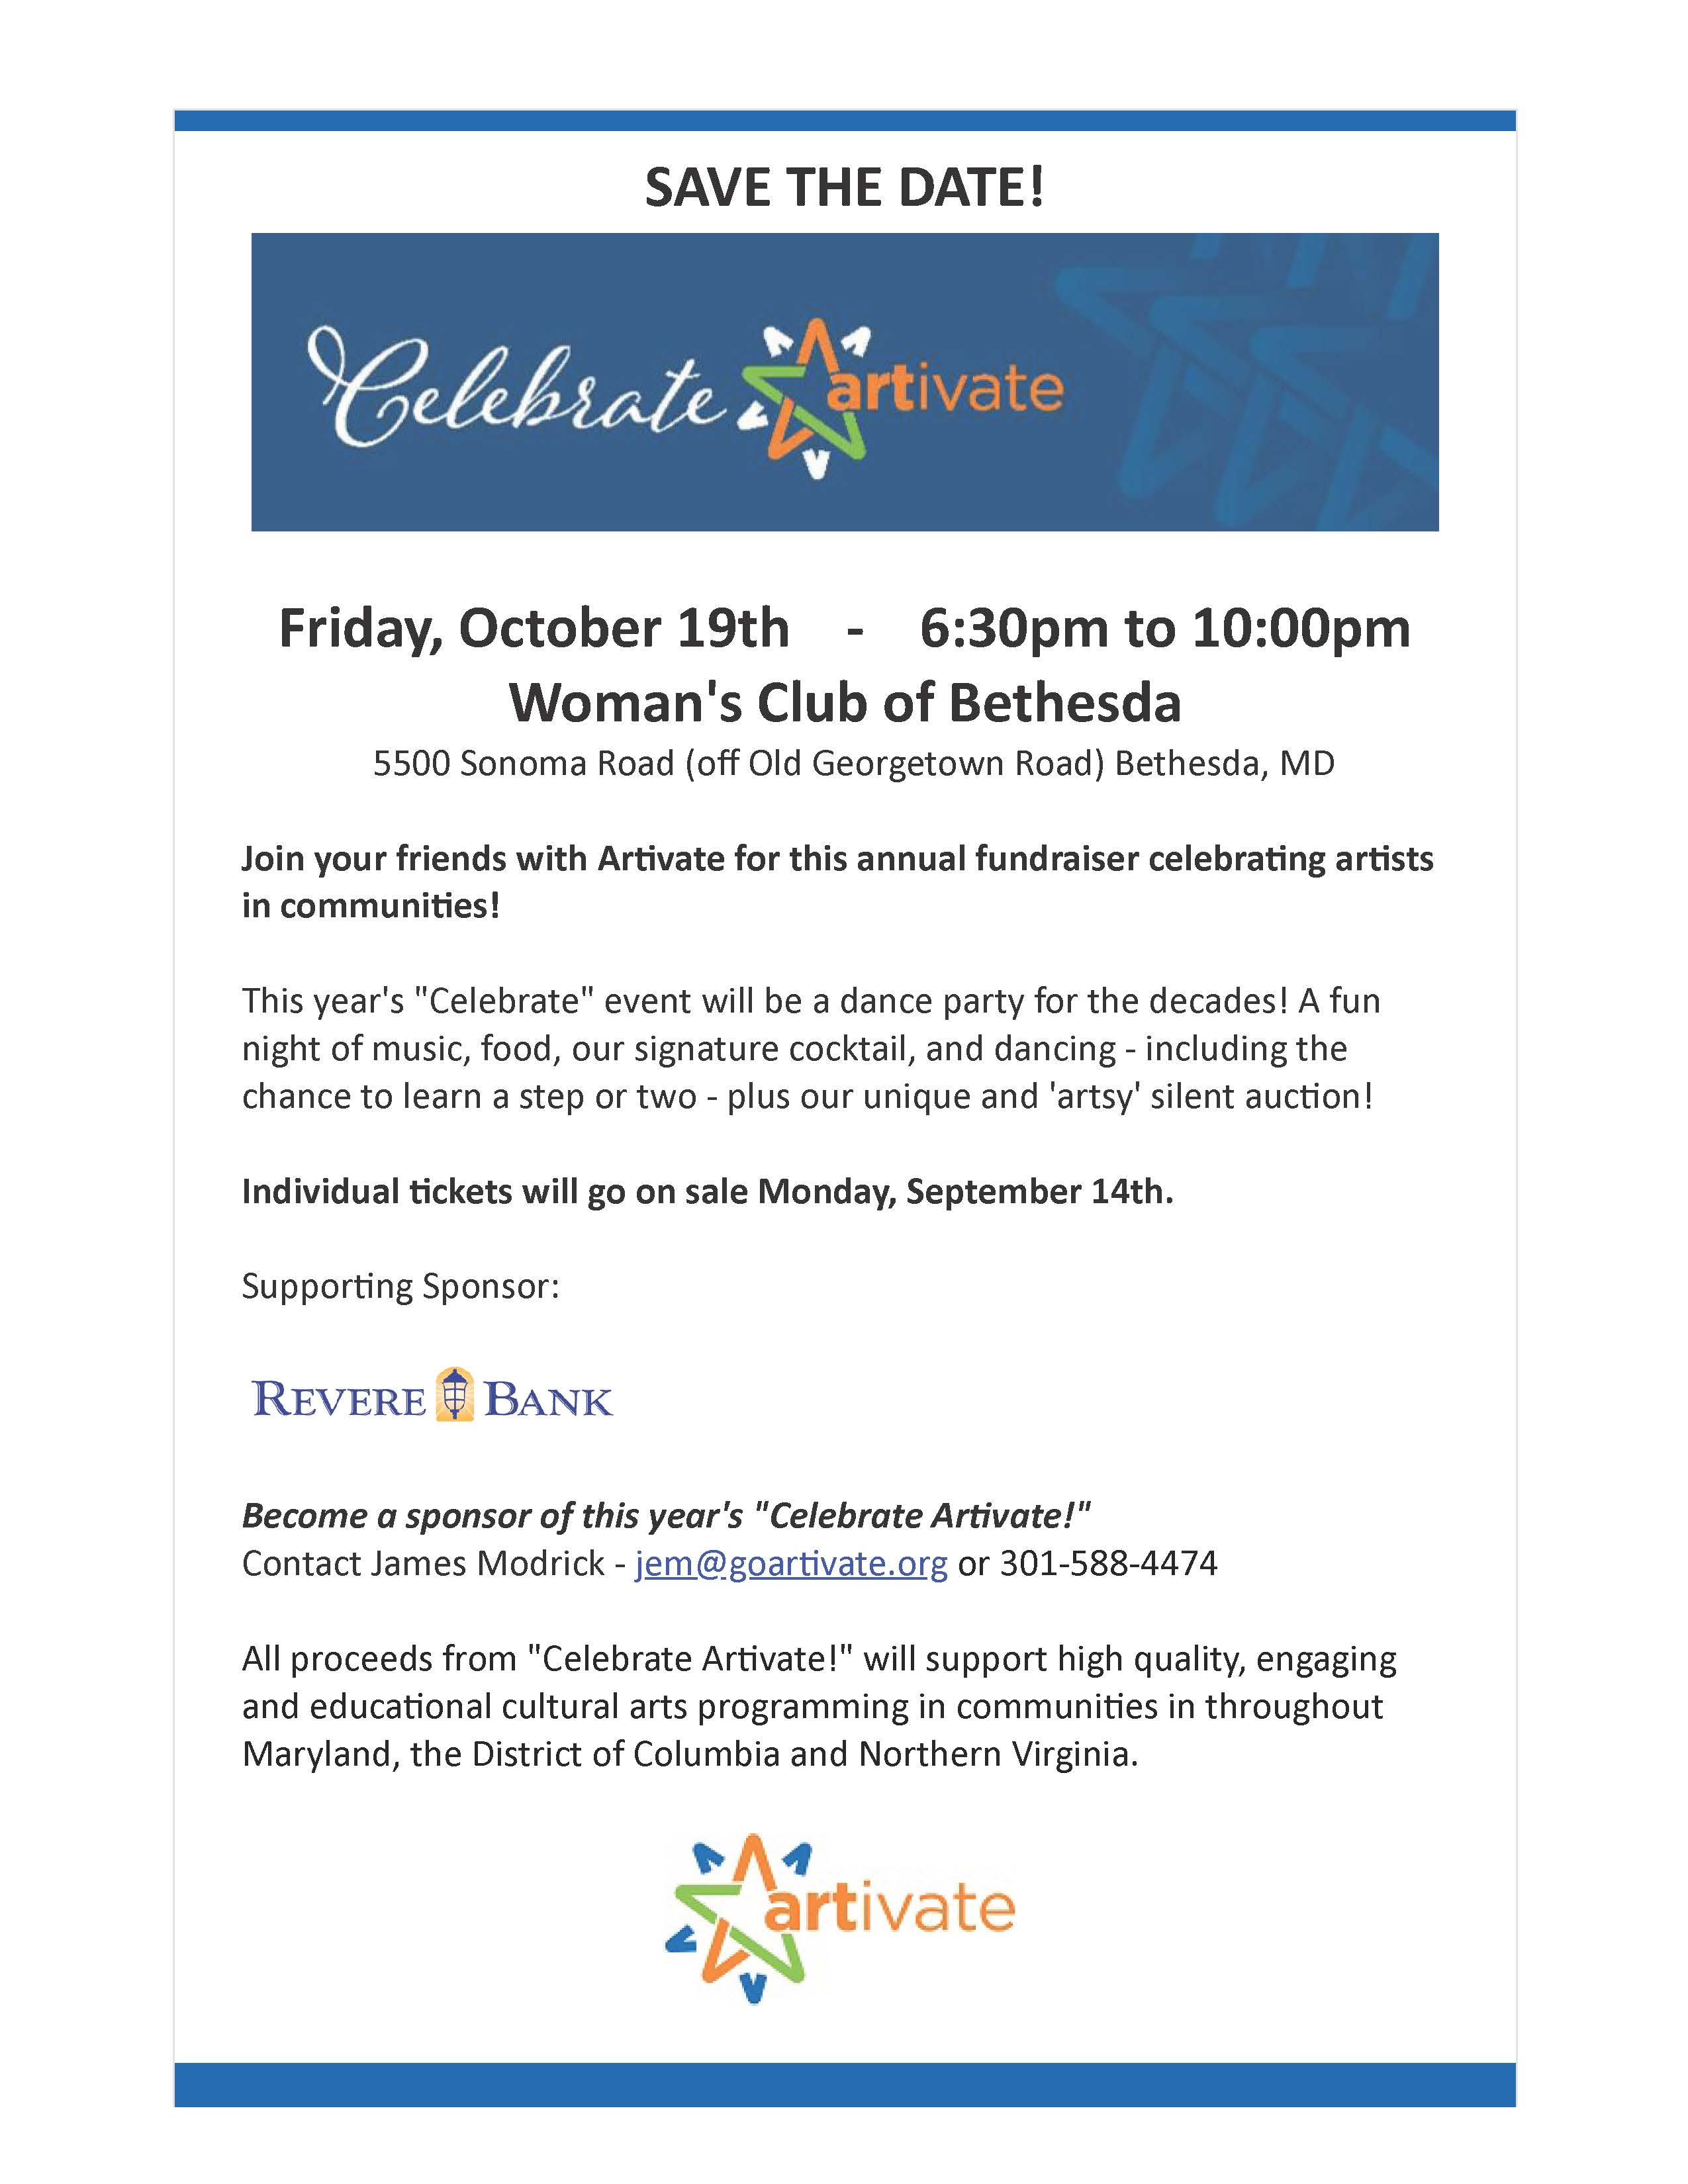 Save The Date For Celebrate Artivate!